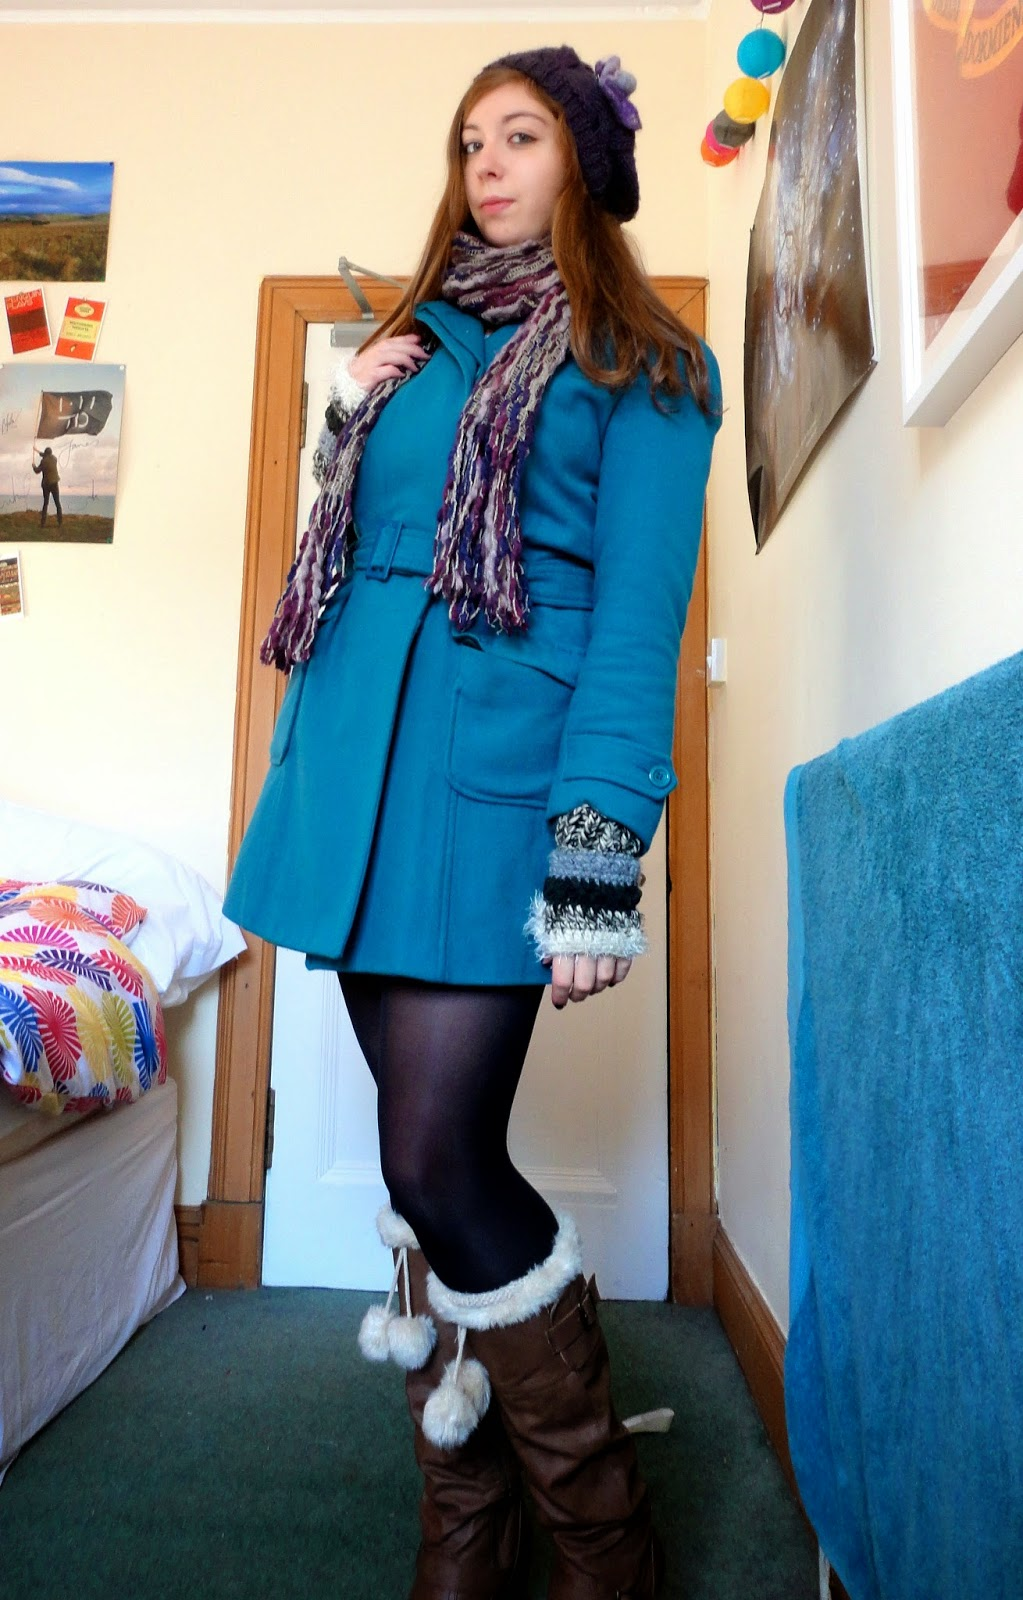 outdoor winter outfit of turquoise blue coat, brown leather boots, purple hat & scarf, fingerless mittens